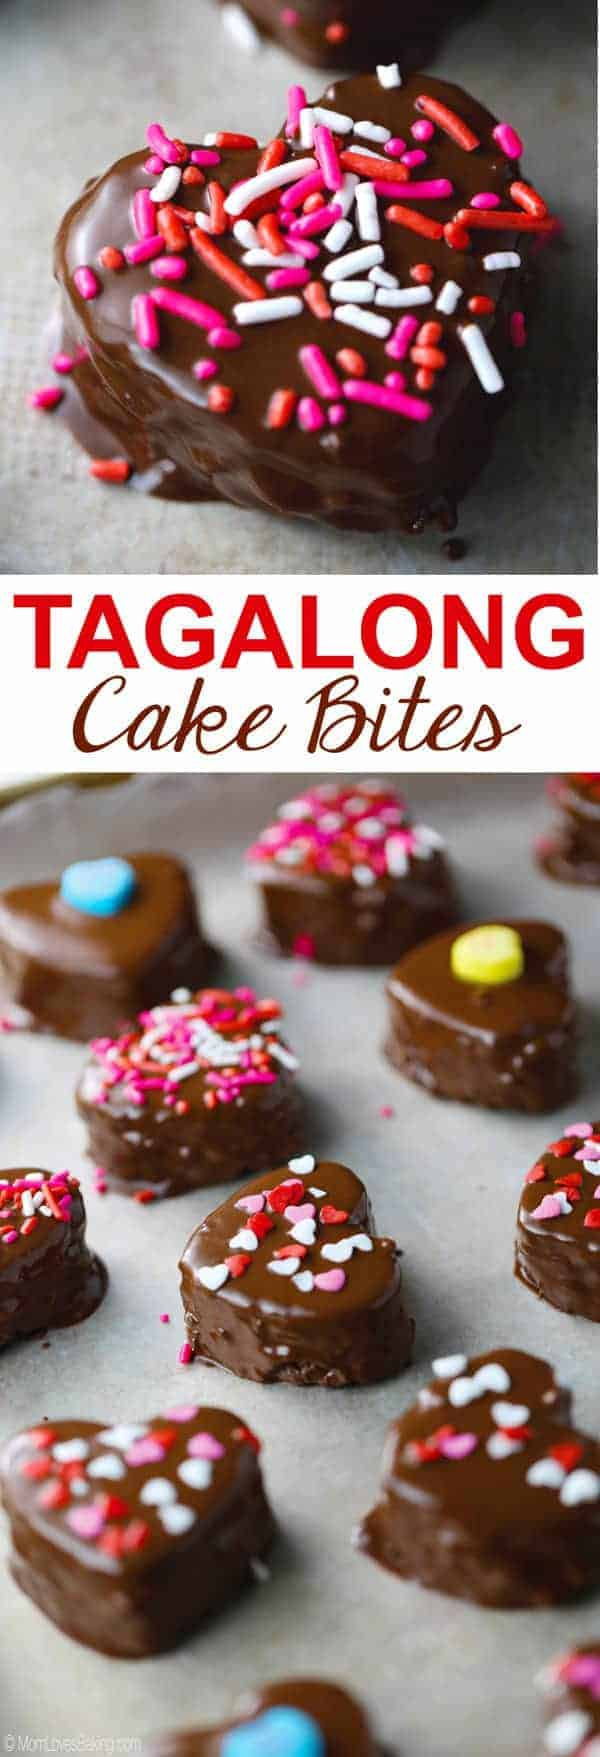 Heart shaped Tagalong Cake Bites